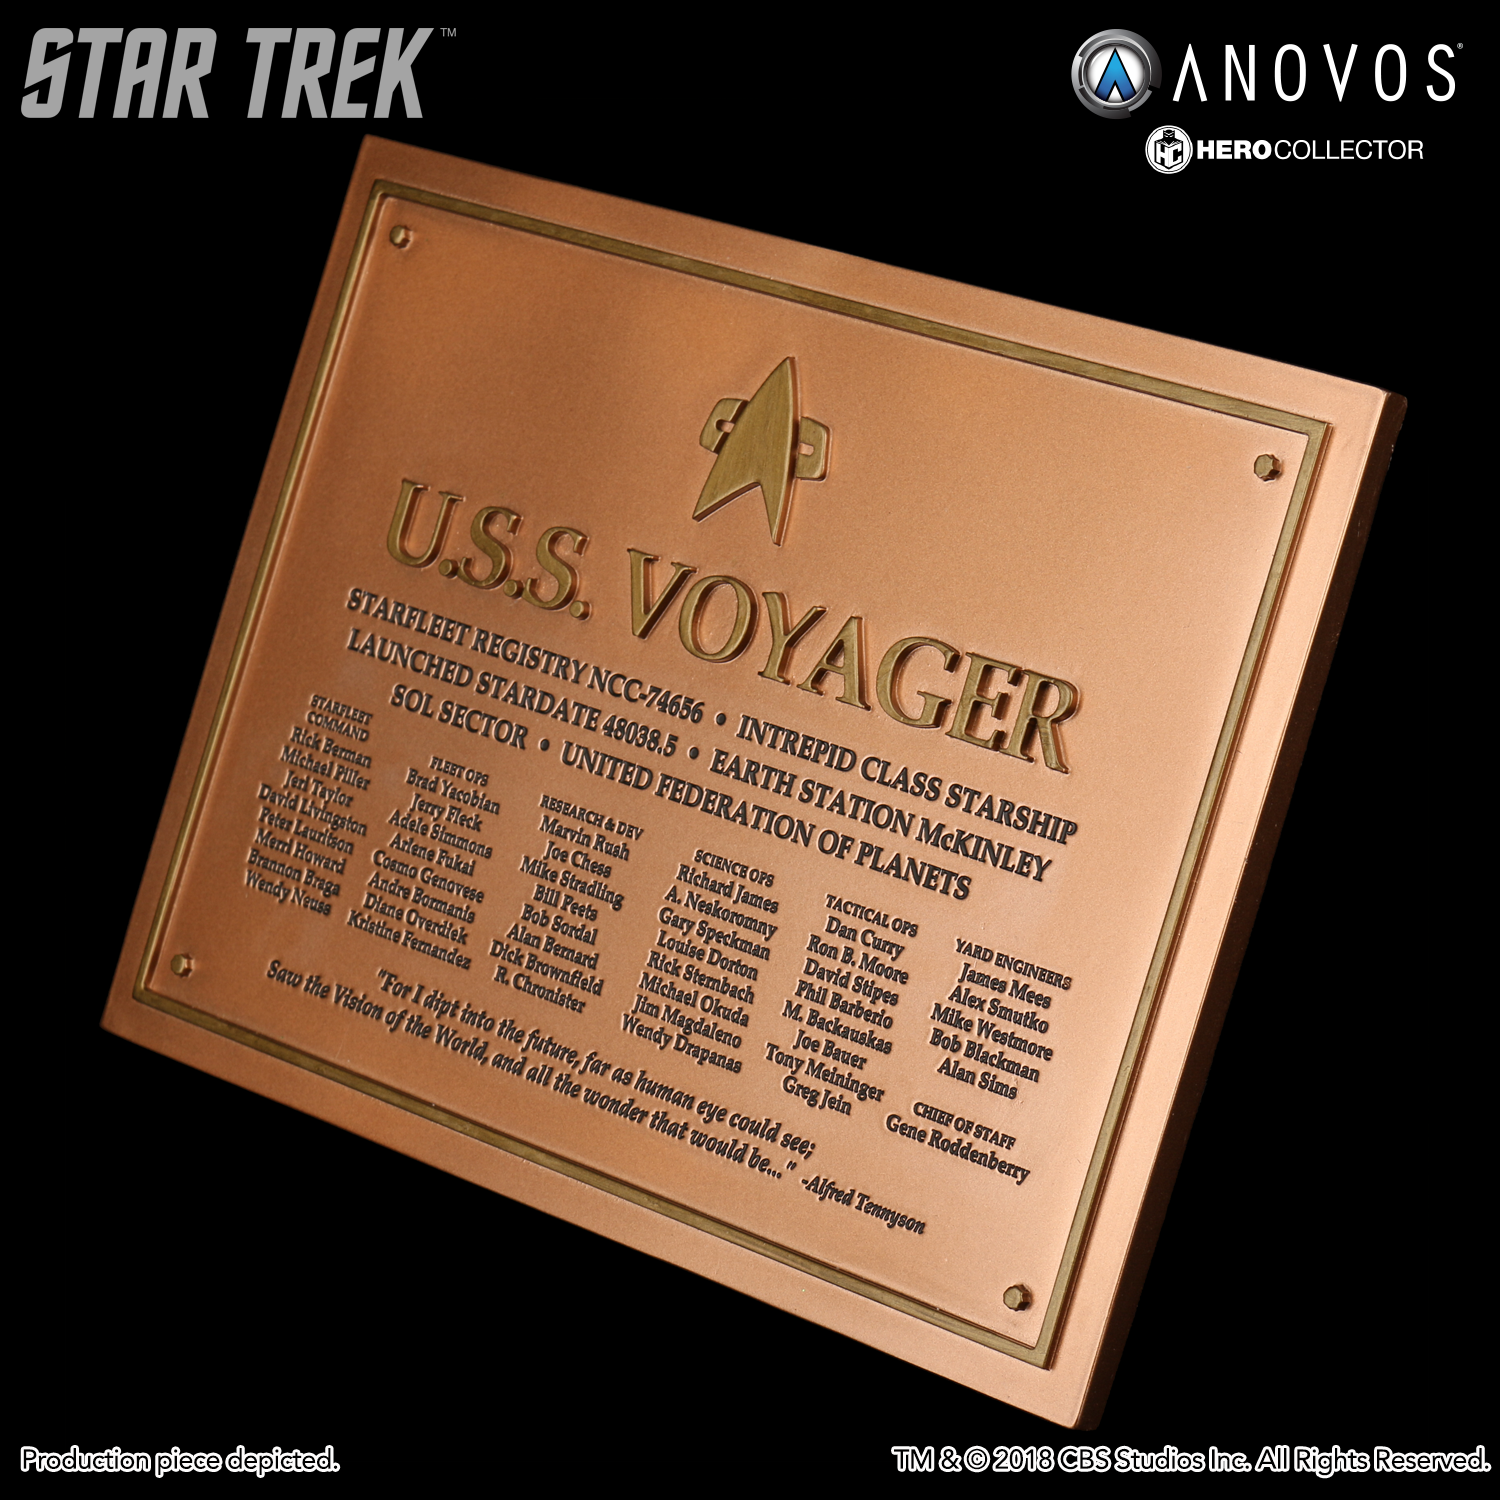 Eaglemoss Voyager Schiffs Plakette Neu Star Trek Dedication Plaque Replica